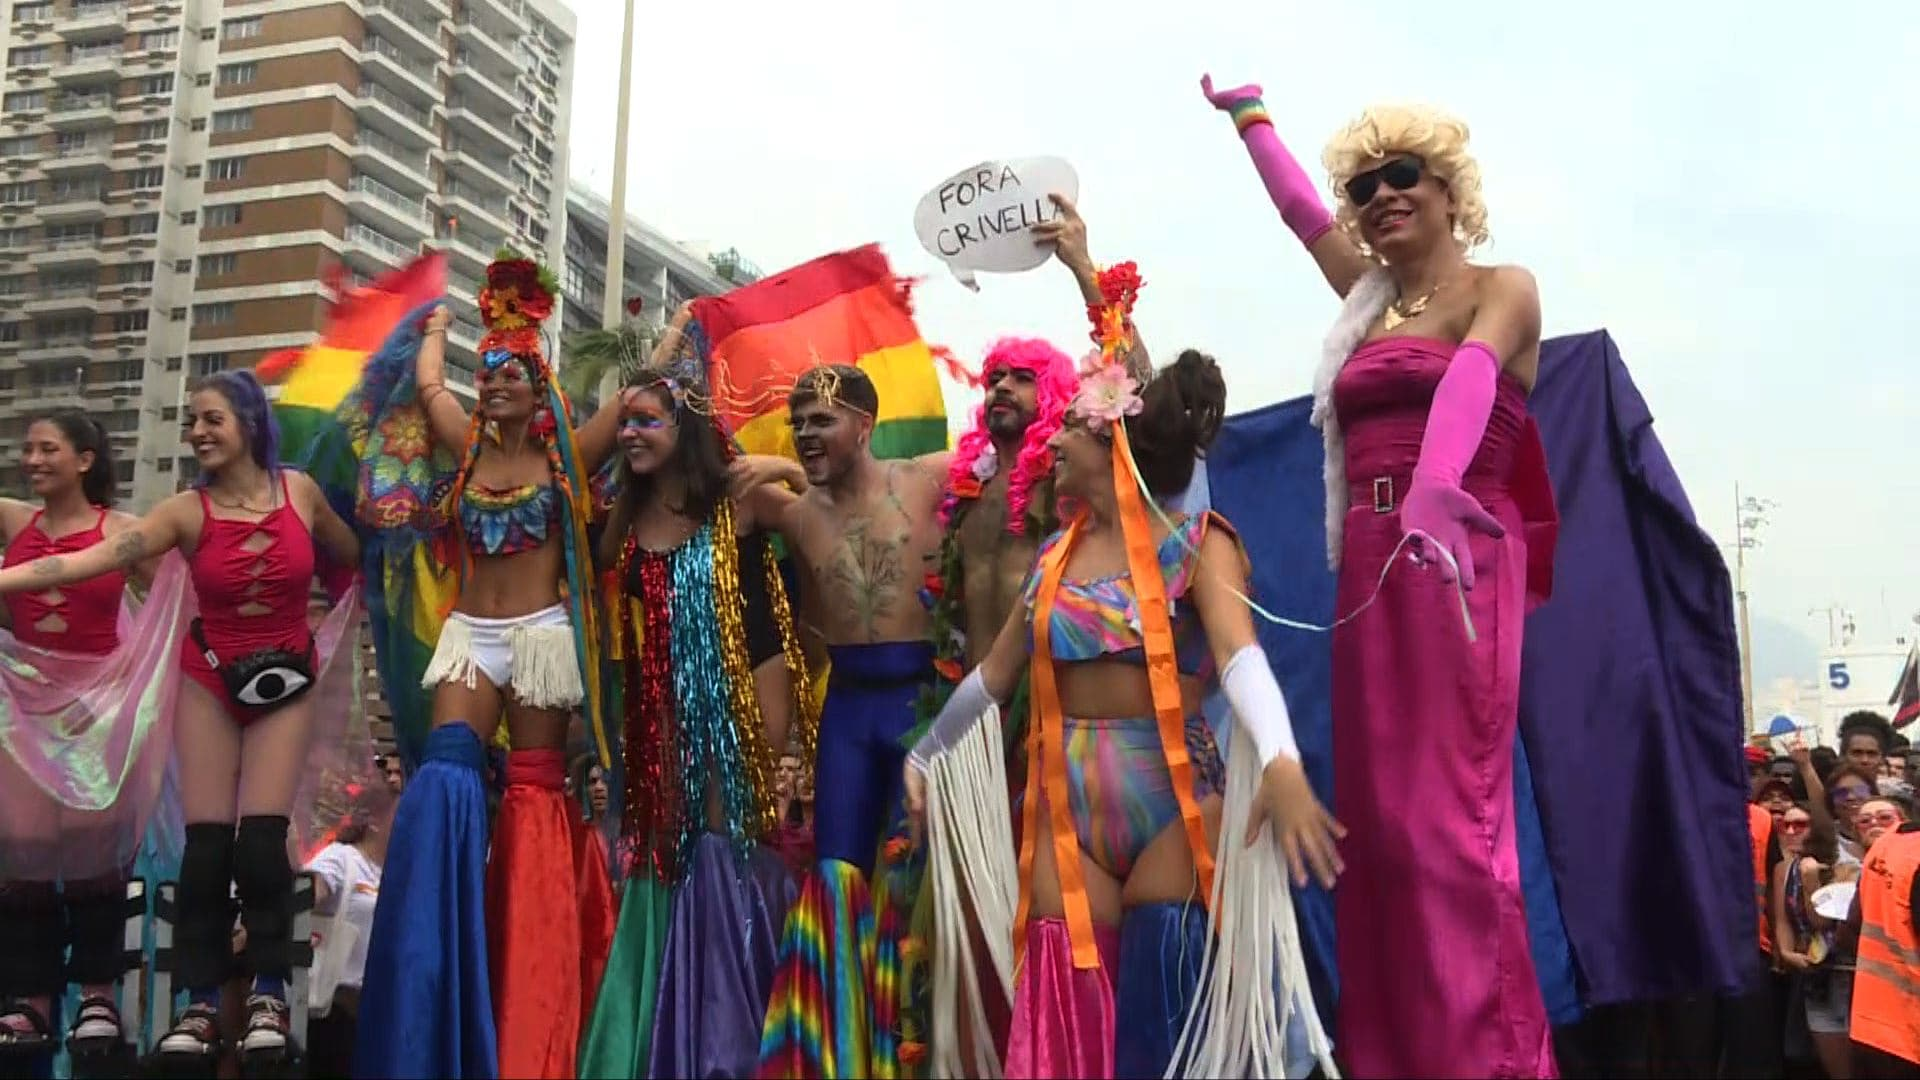 Rio's gay pride marches on despite conservative opposition